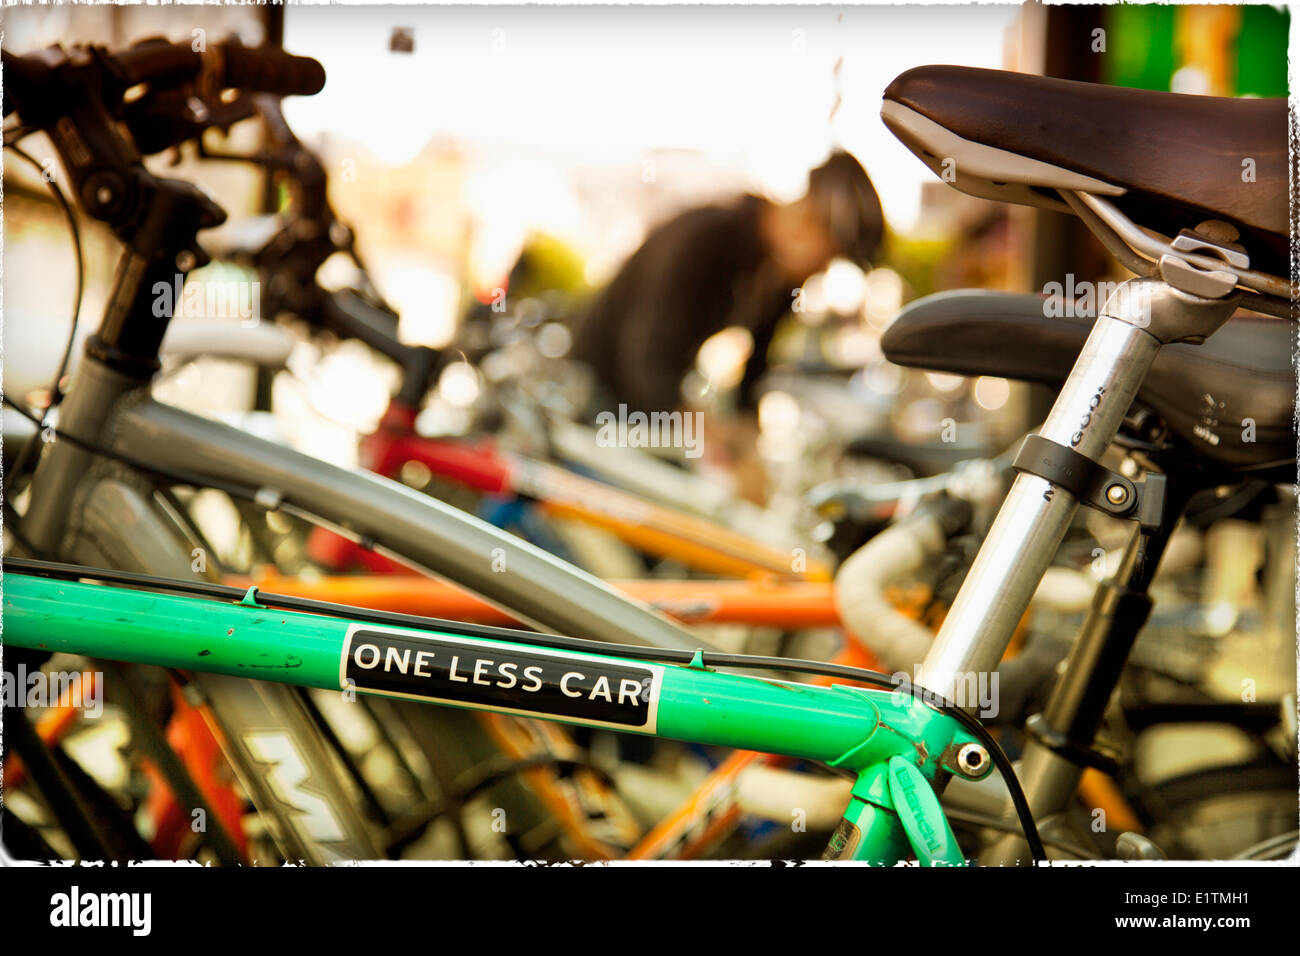 Bumper Sticker On Bycycle One Less Car Stock Photo Royalty Free